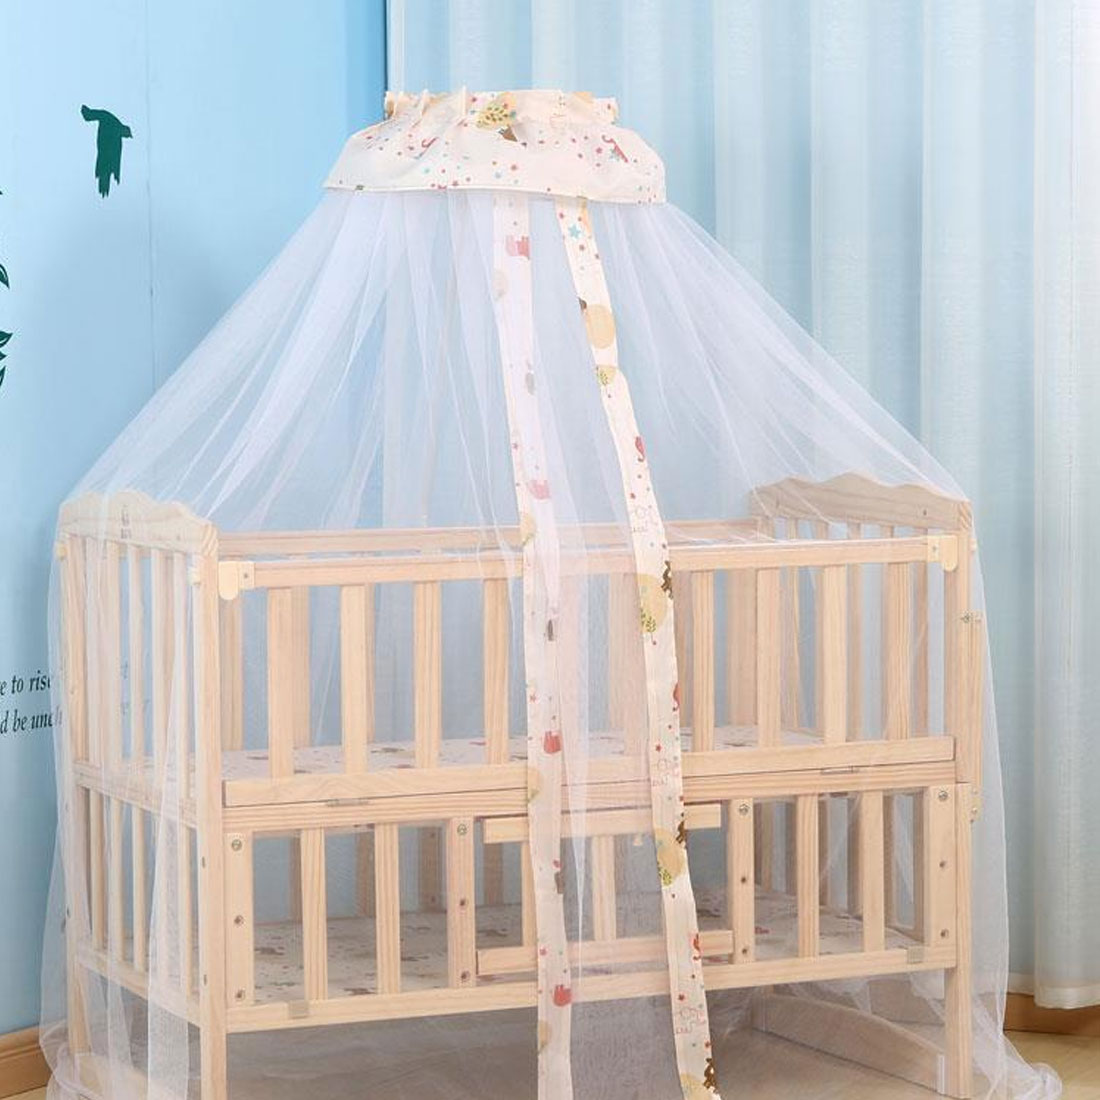 Baby crib youth bed - Kids Tent General Door Baby Mosquito Net Dome Palace Ground Bed Folding Baby Crib Mosquito Nets Canopies In Cot Netting